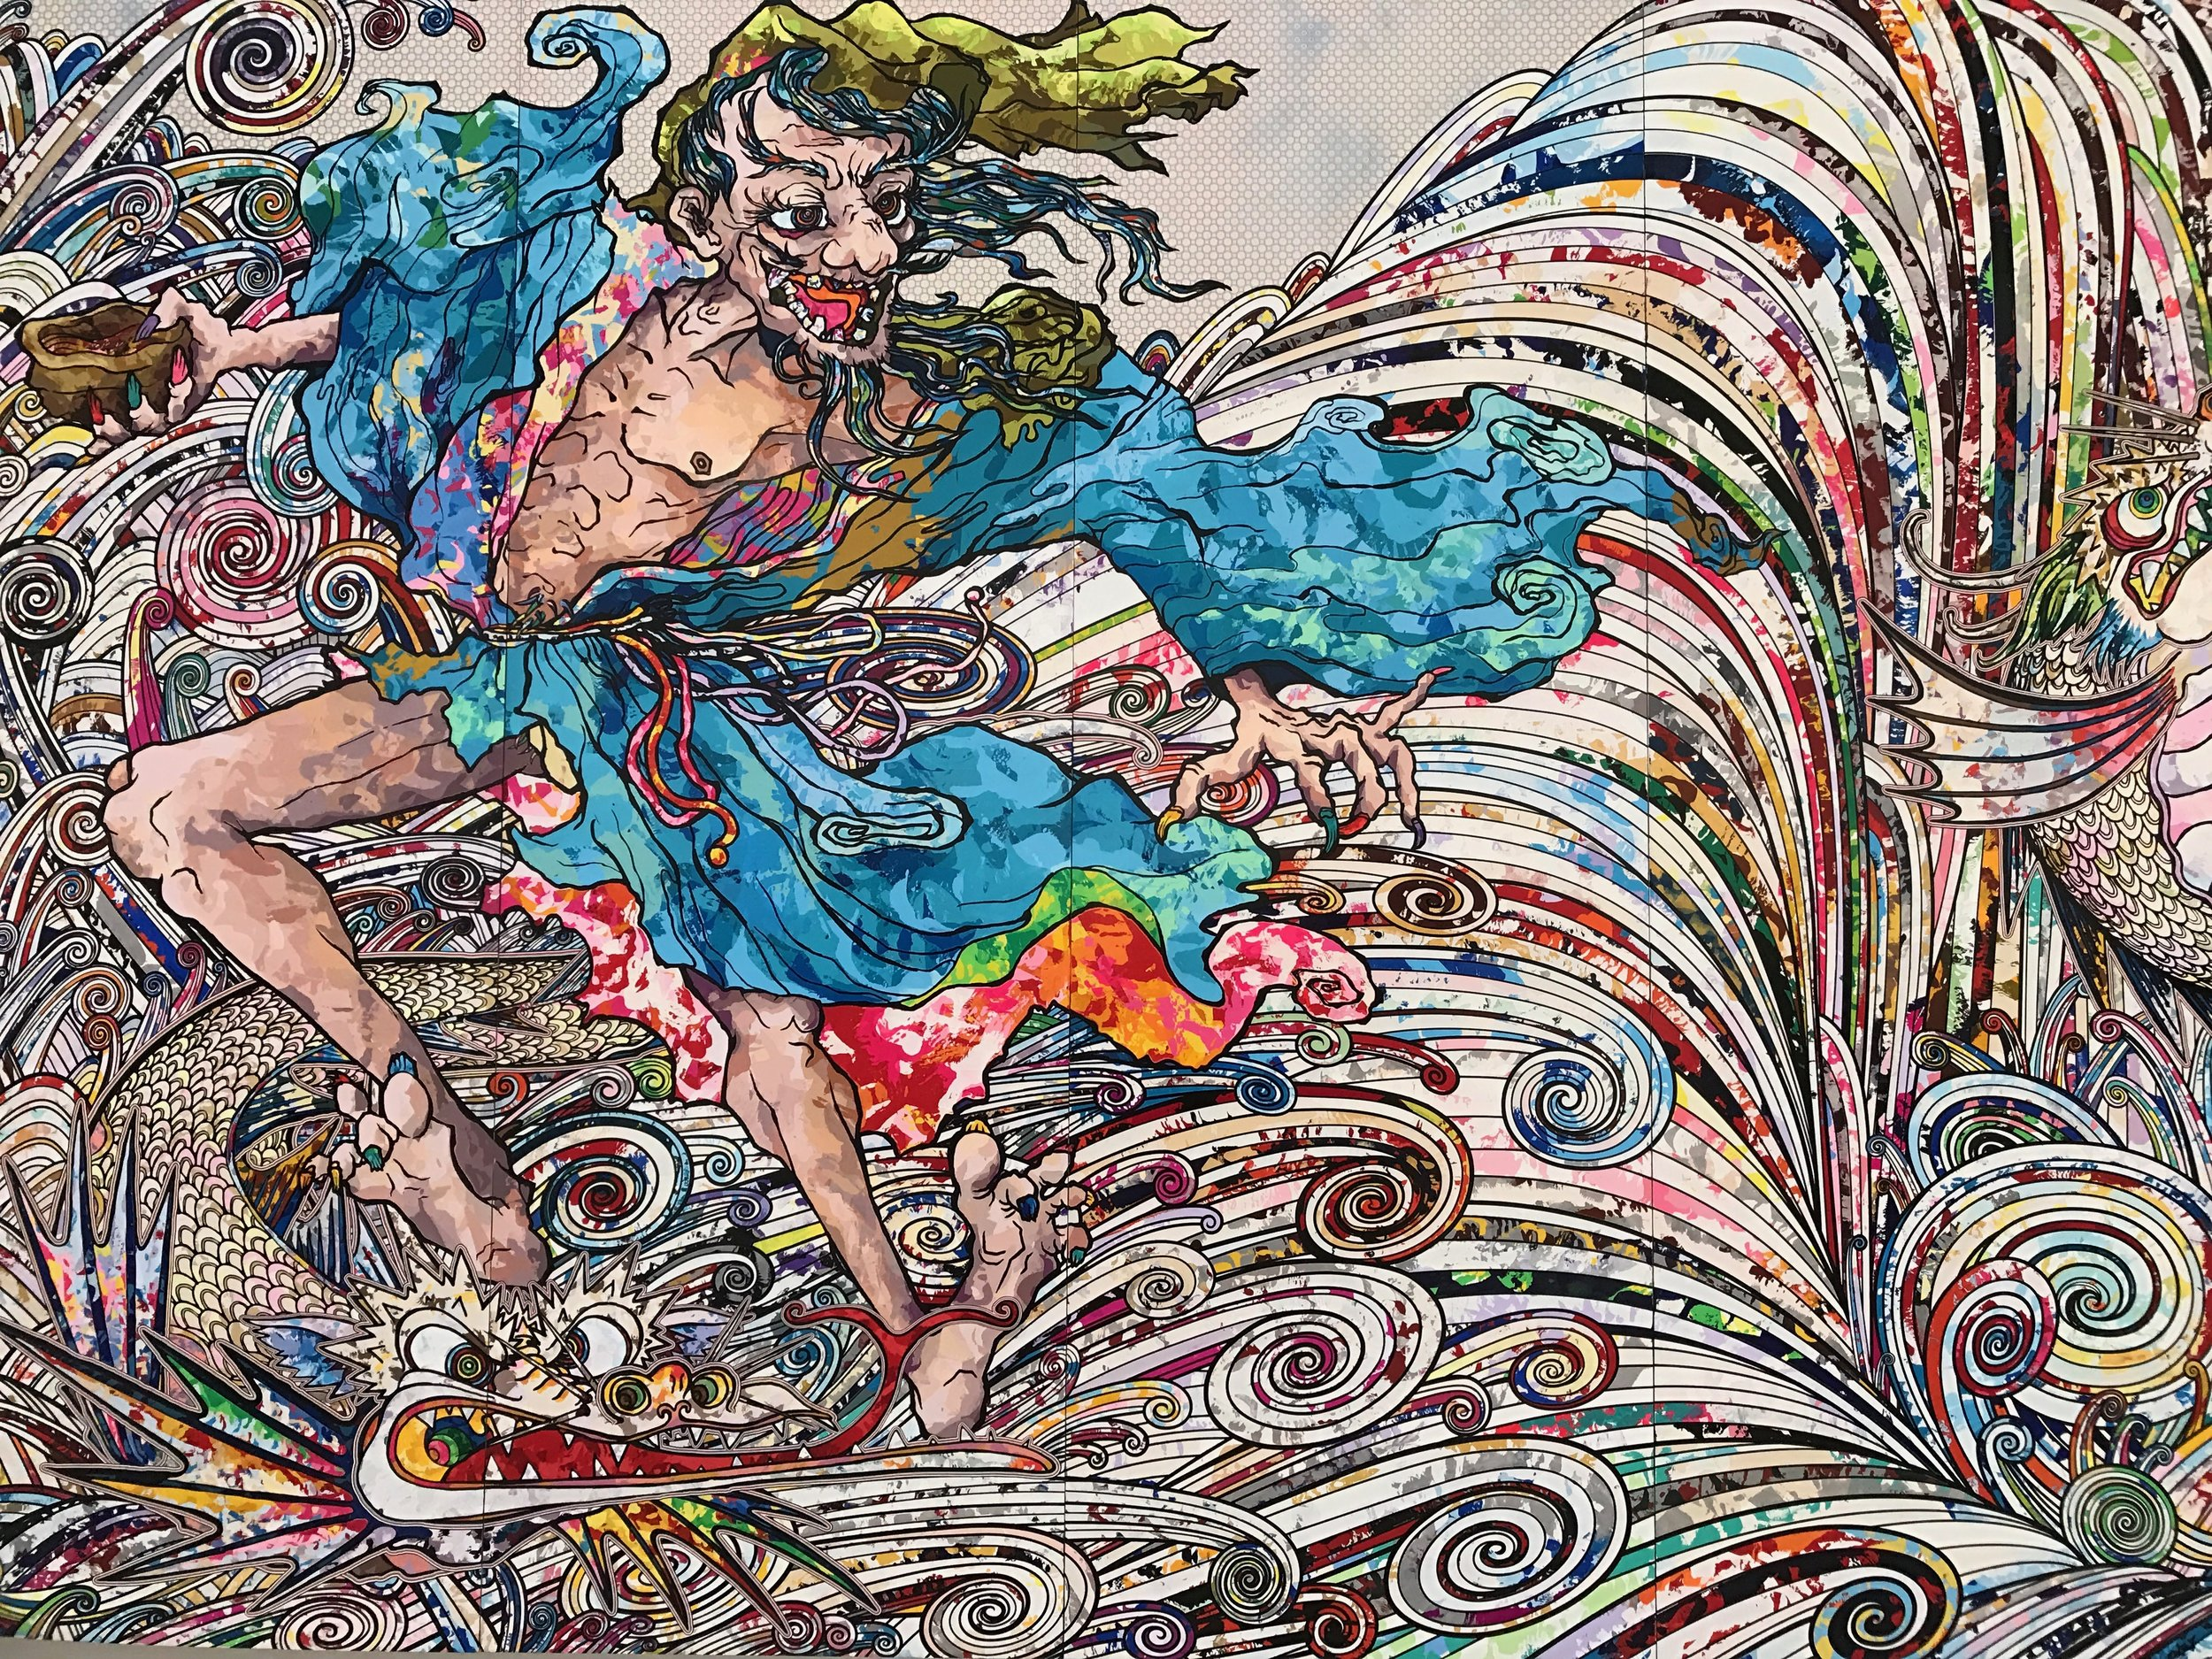 In the Land of the Dead, Stepping on the Tail of a Rainbow  by  Takashi Murakami  (cropped)